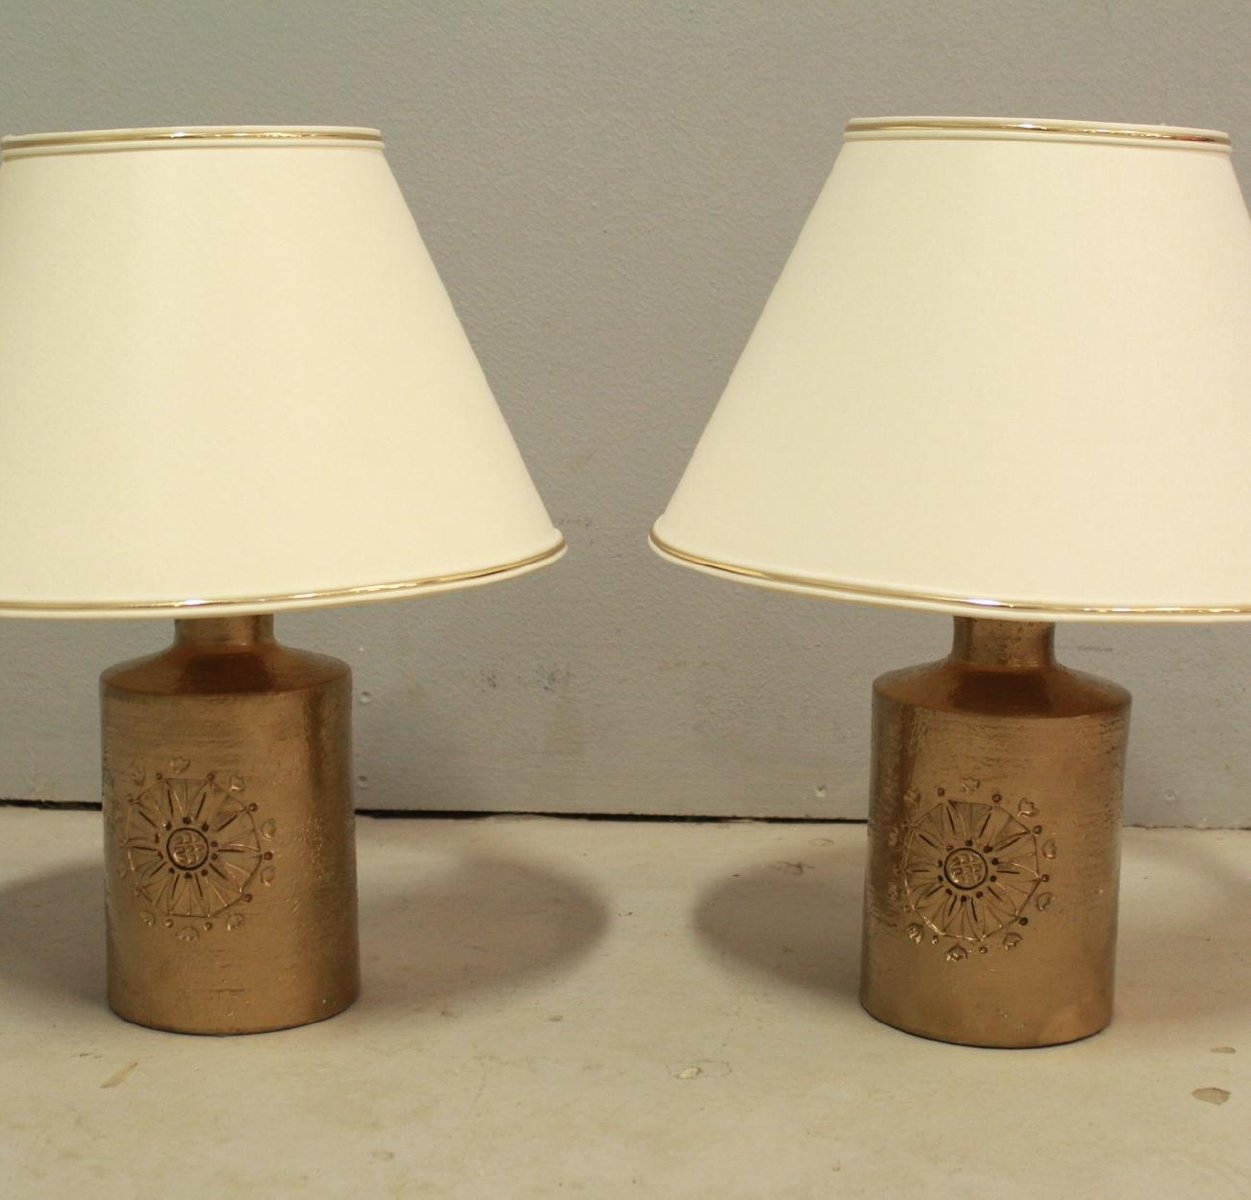 Vintage 22 Karat Gold Glazed Ceramic Table Lamps By Bitossi For Bergboms,  Set Of 2